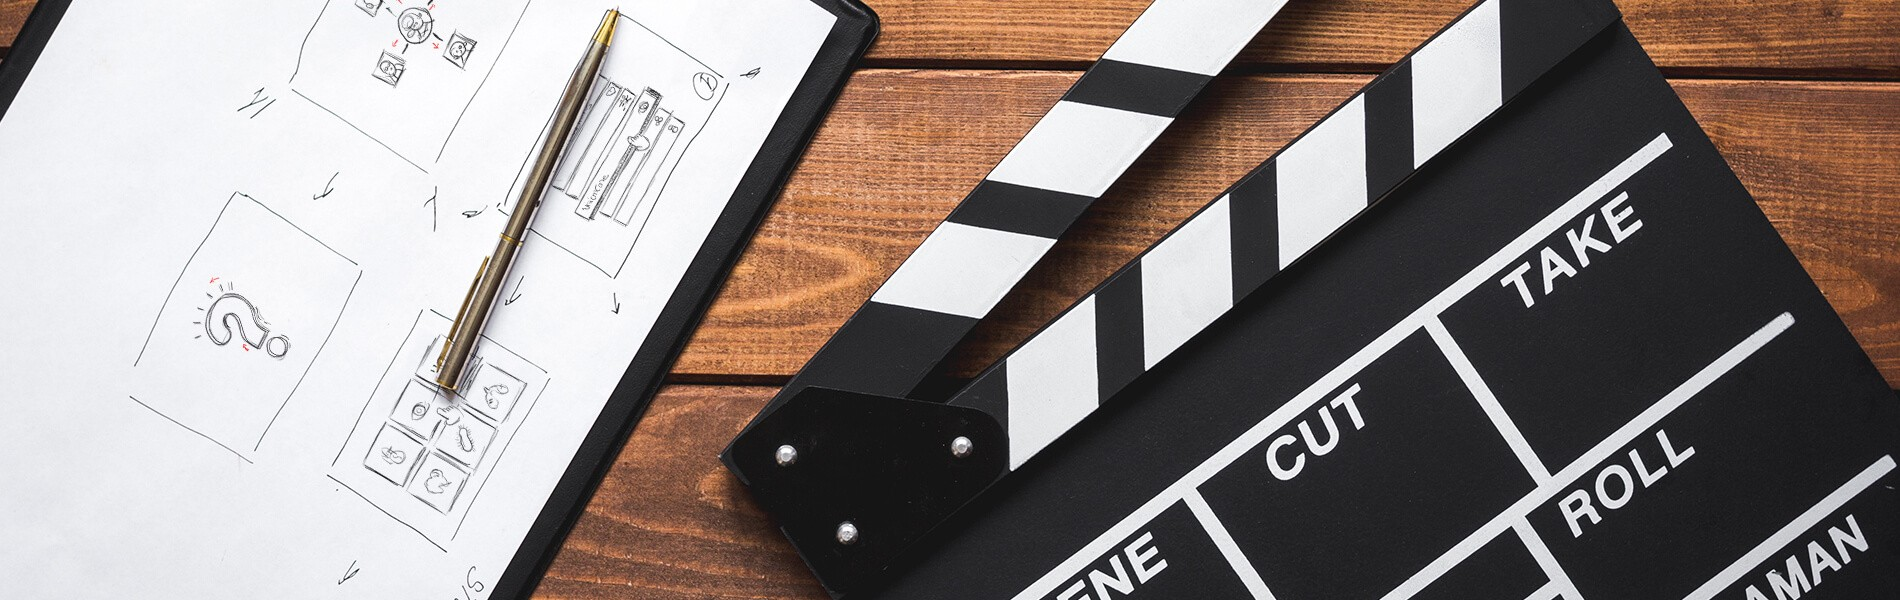 Your awesome guide to create a storyboard for video production.02